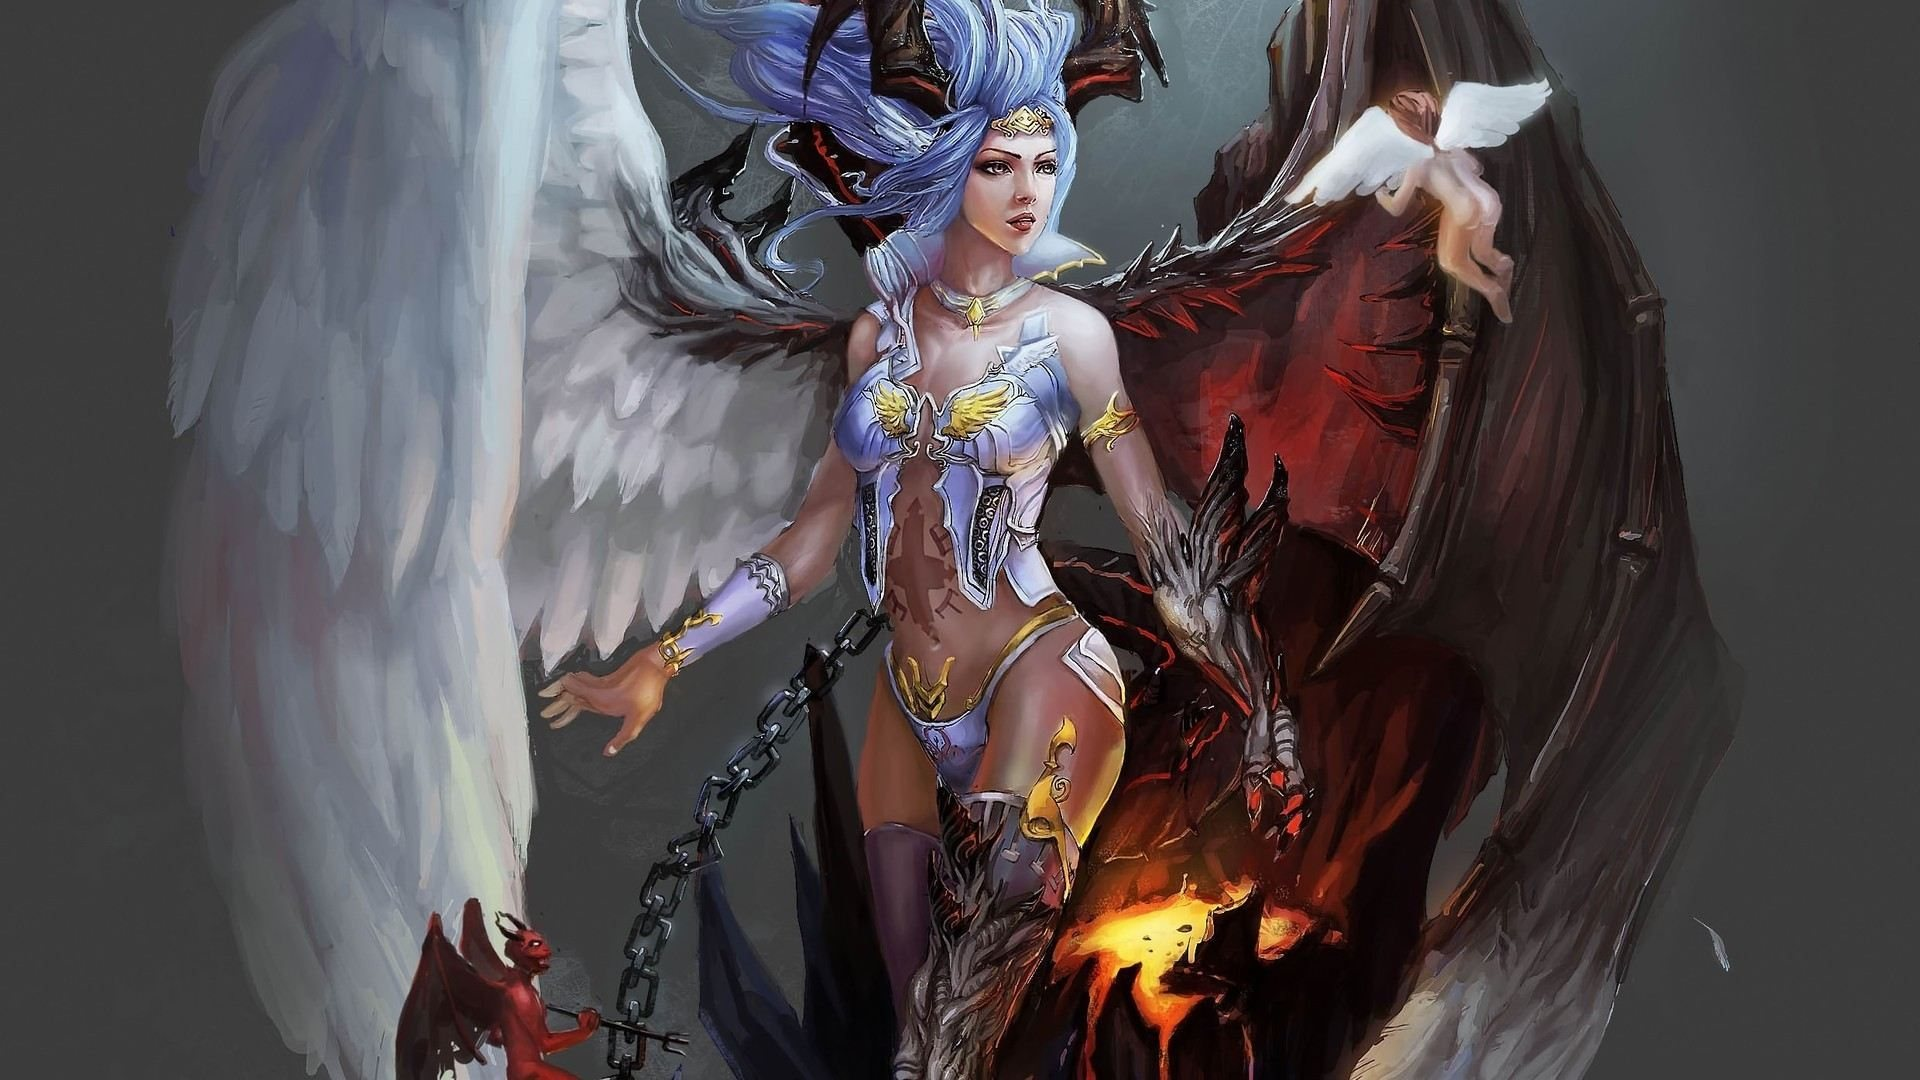 free hd wallpapers 1920x1080 fantasy angel and demon angel and demon 1920x1080